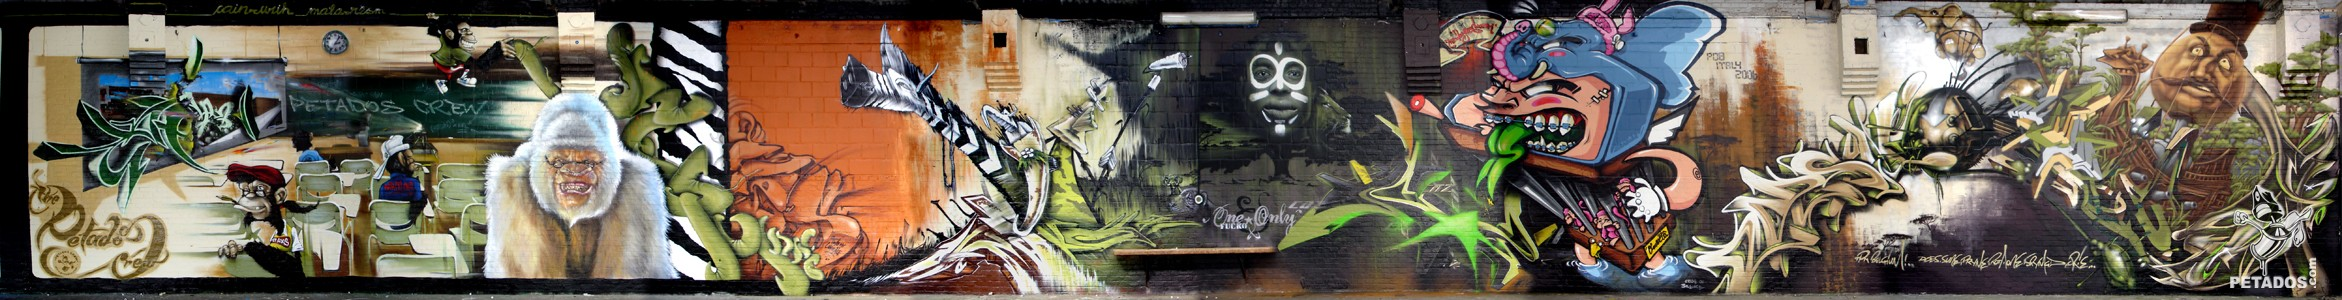 """4 ELEMENTS BOONCE"""" (Hasselt) 2006– Cayn, Urih, Ma'La, Resm"""